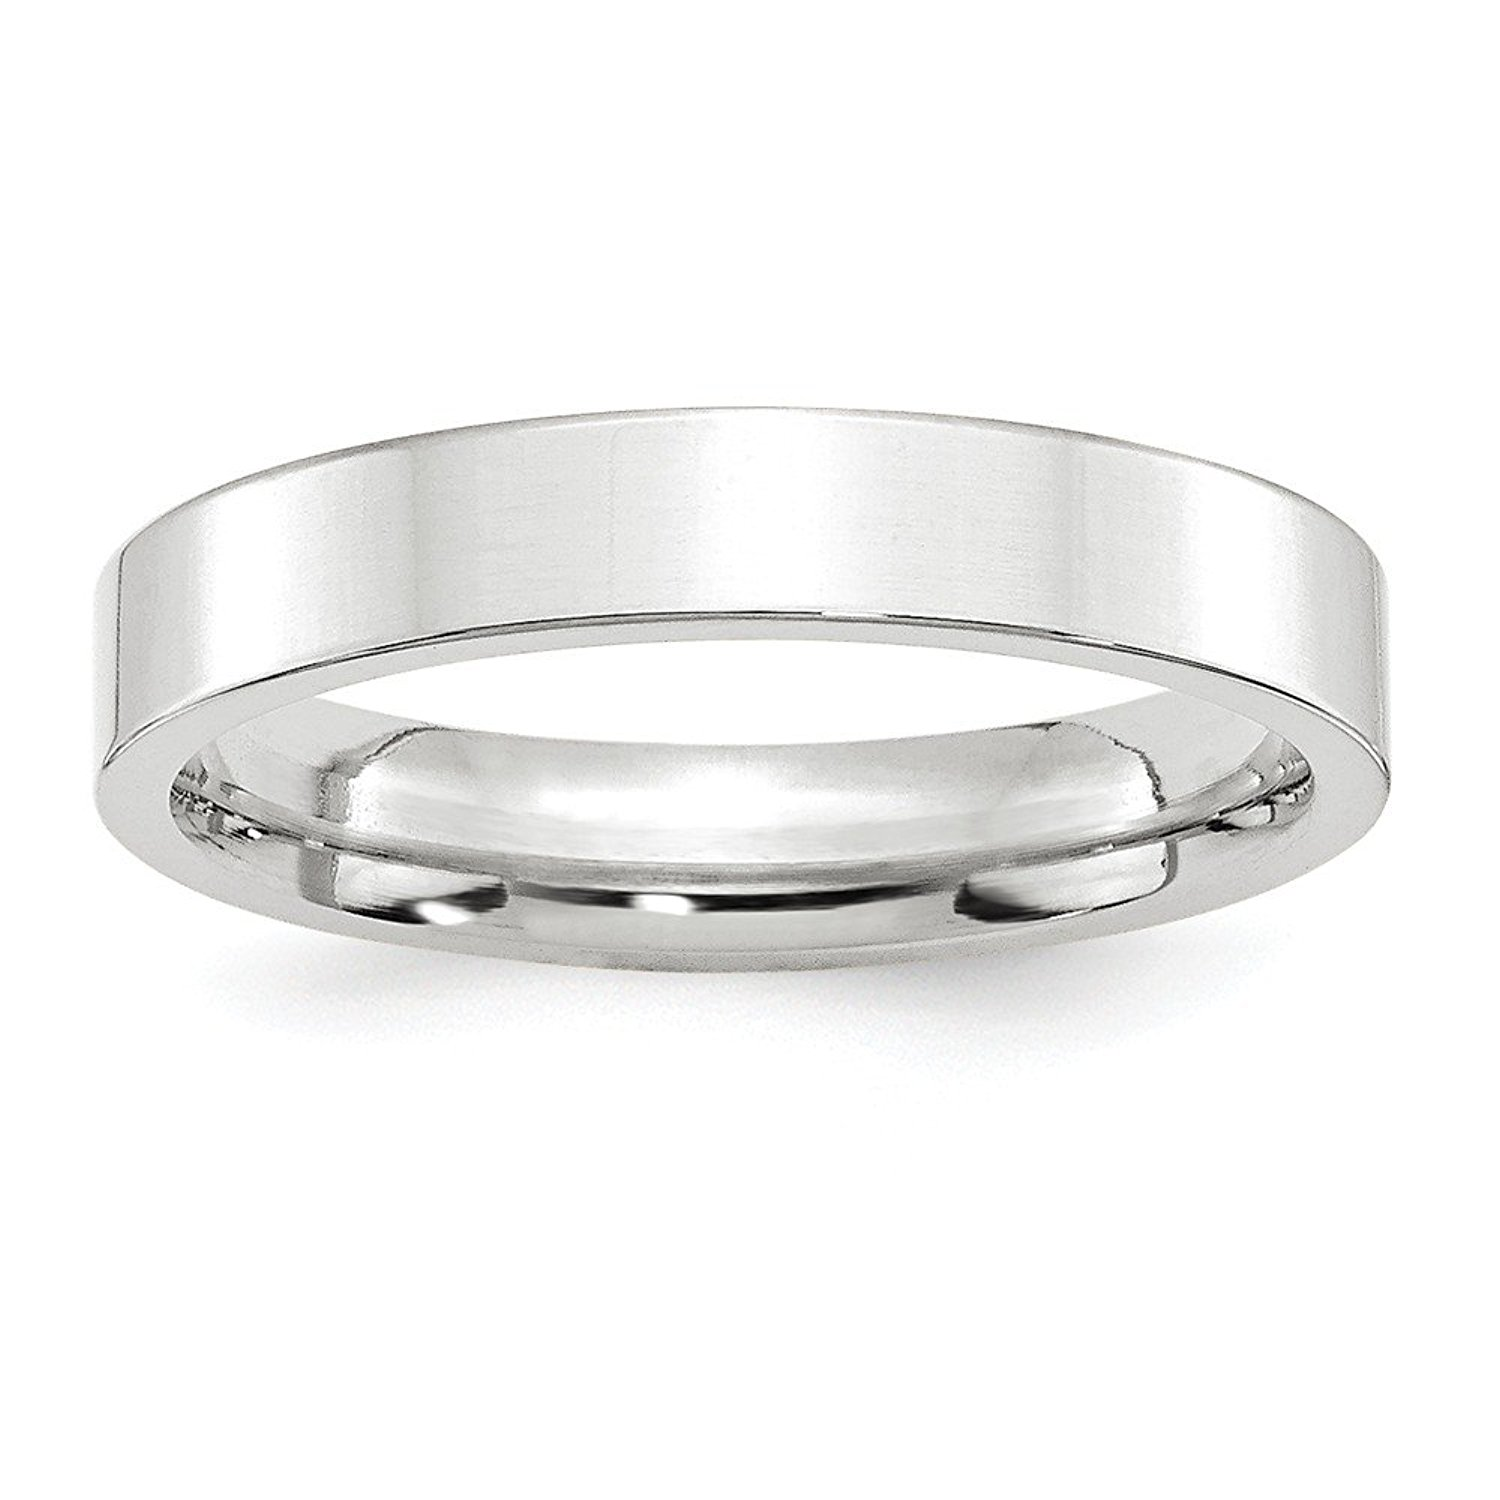 Top 10 Jewelry Gift 14KW 4mm Standard Flat Comfort Fit Band Size 10